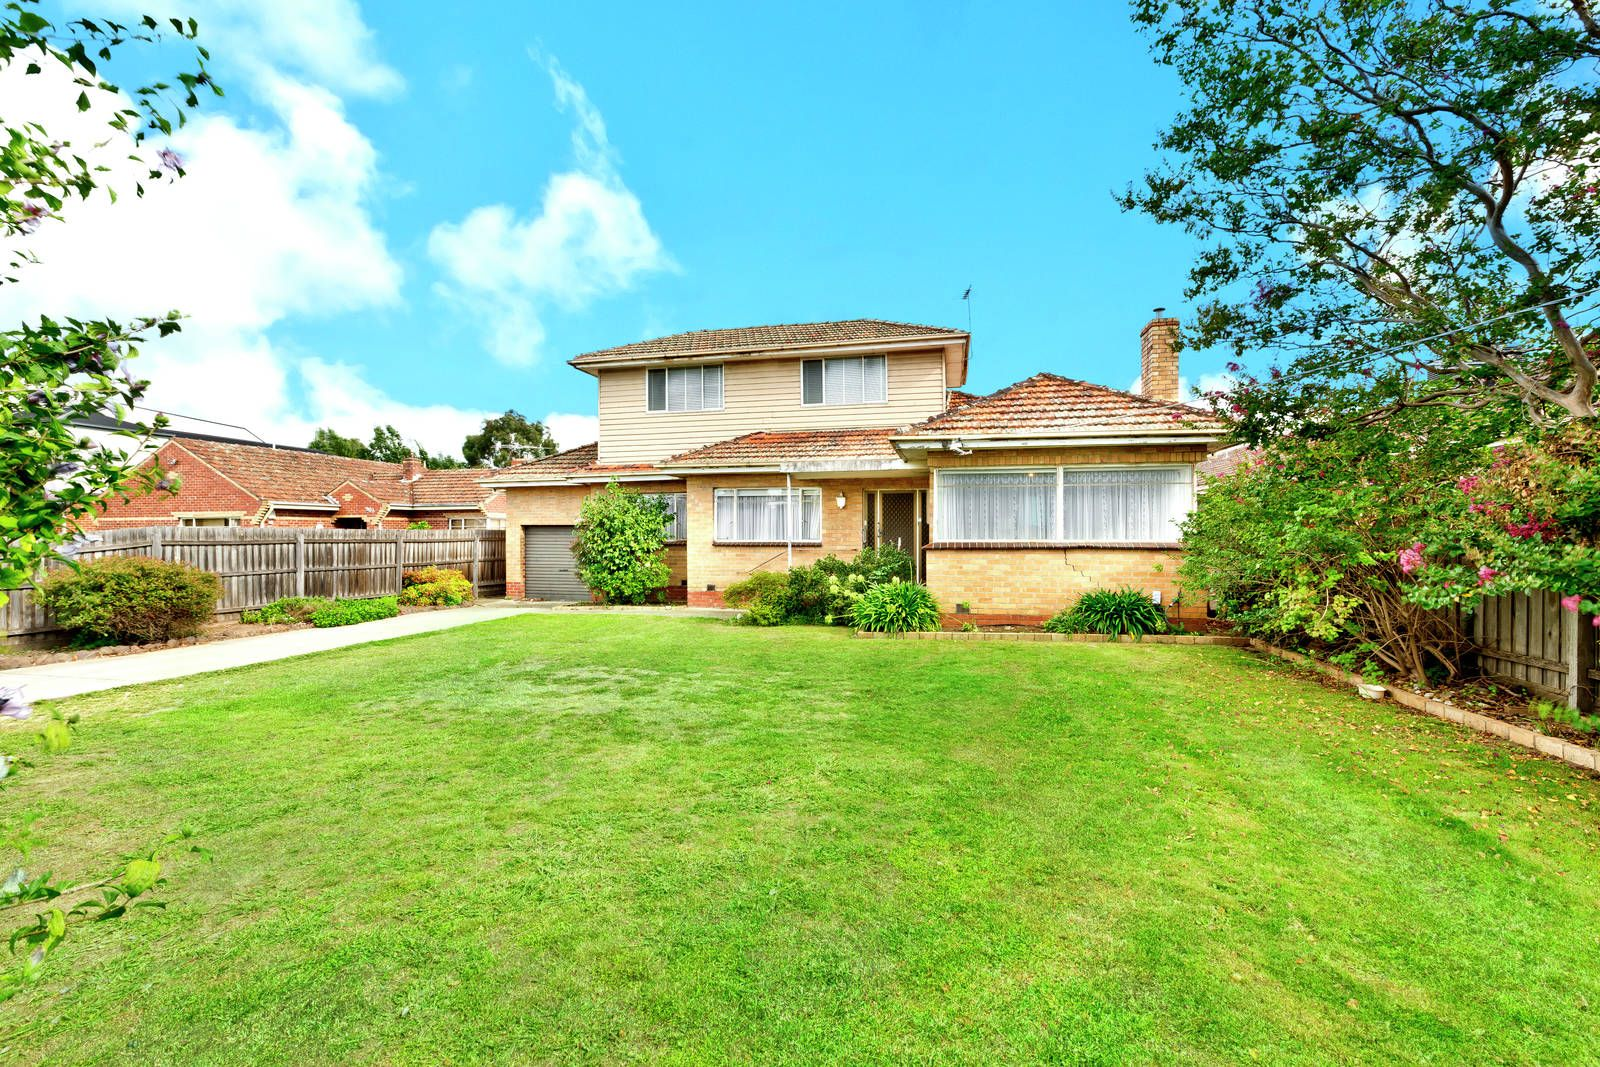 991 - 993 Plenty Road, Kingsbury VIC 3083, Image 1